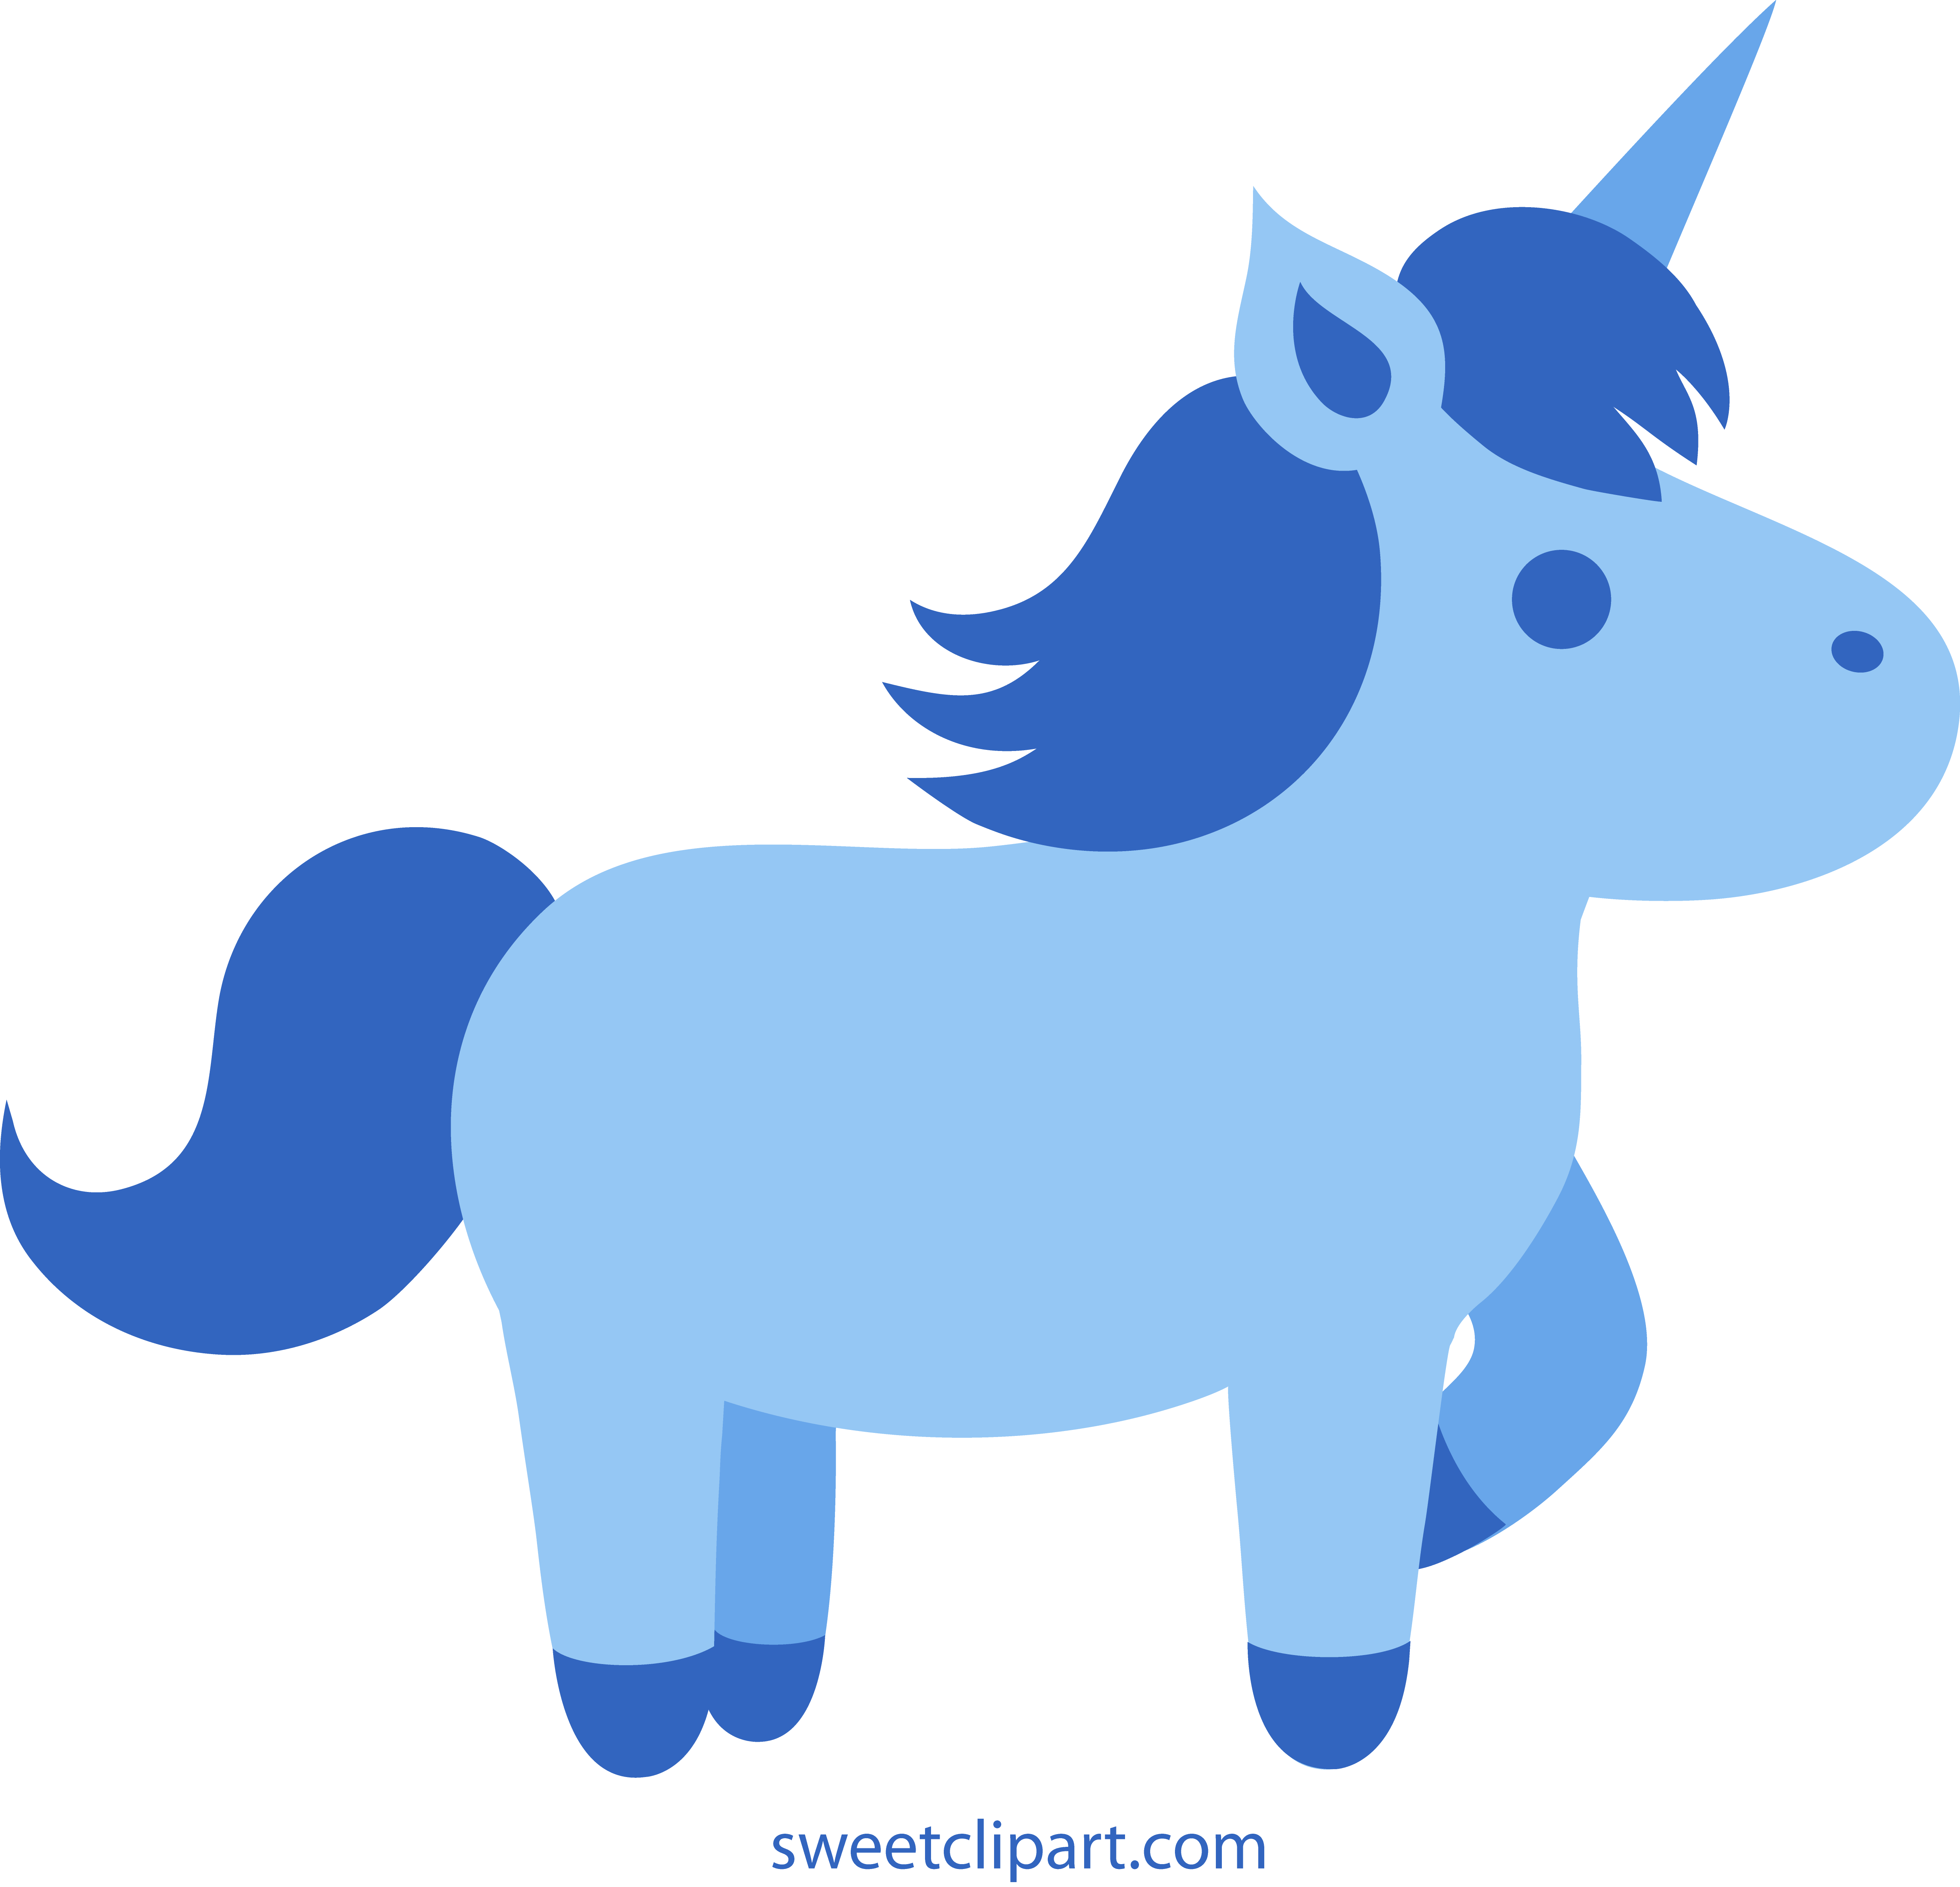 flying unicorn clipart at getdrawings com free for personal use rh getdrawings com free unicorn clip art border free unicorn clipart png